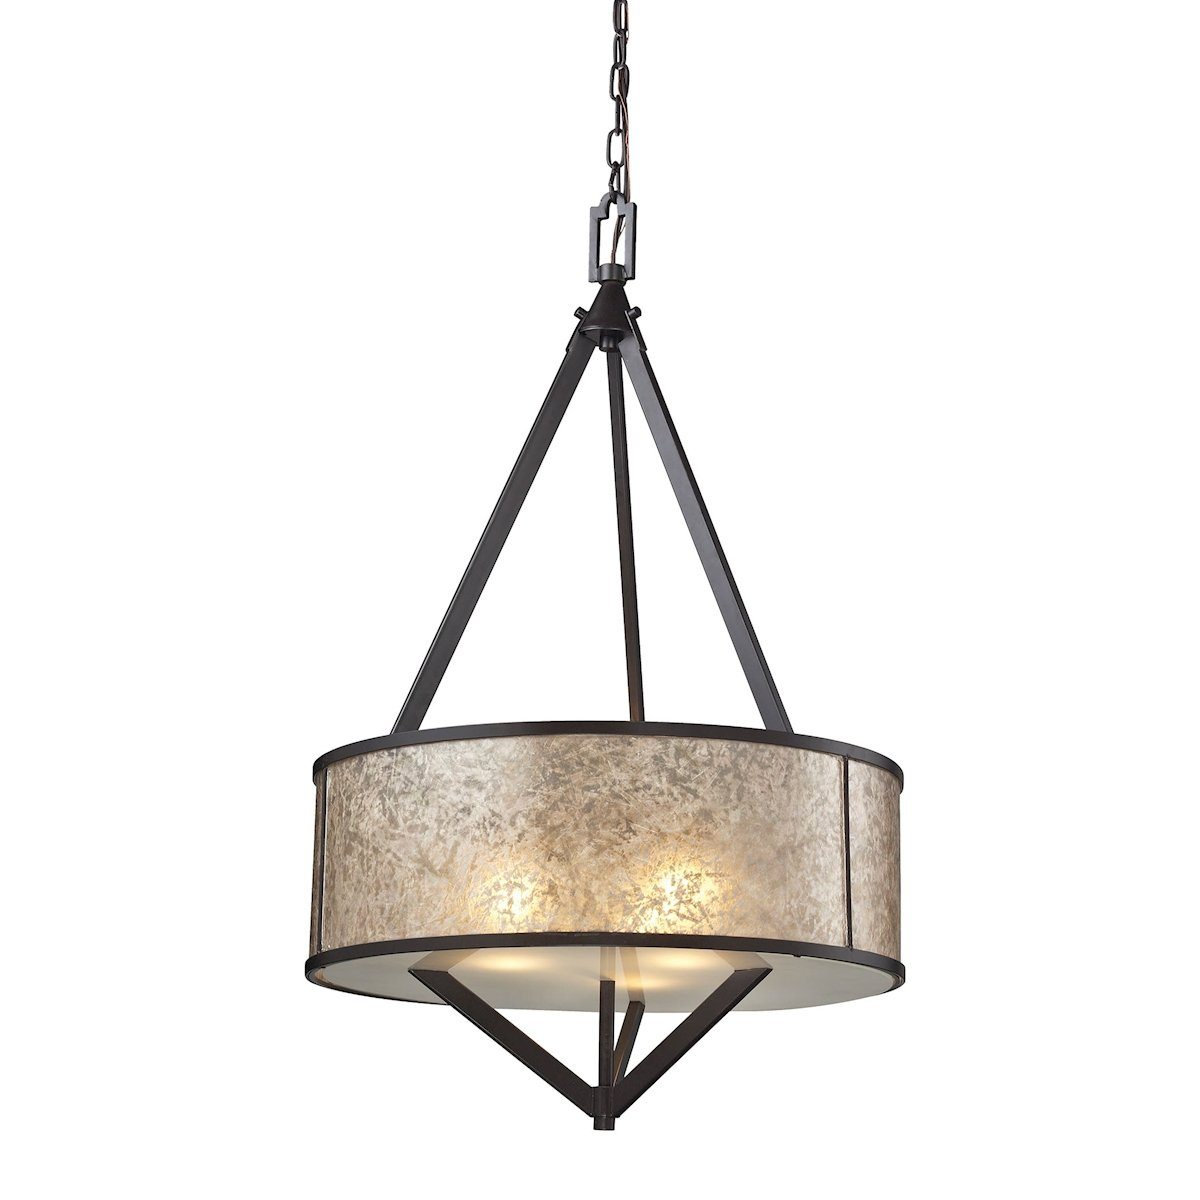 Mica 3 Light Pendant In Oil Rubbed Bronze And Tan Mica Ceiling Elk Lighting